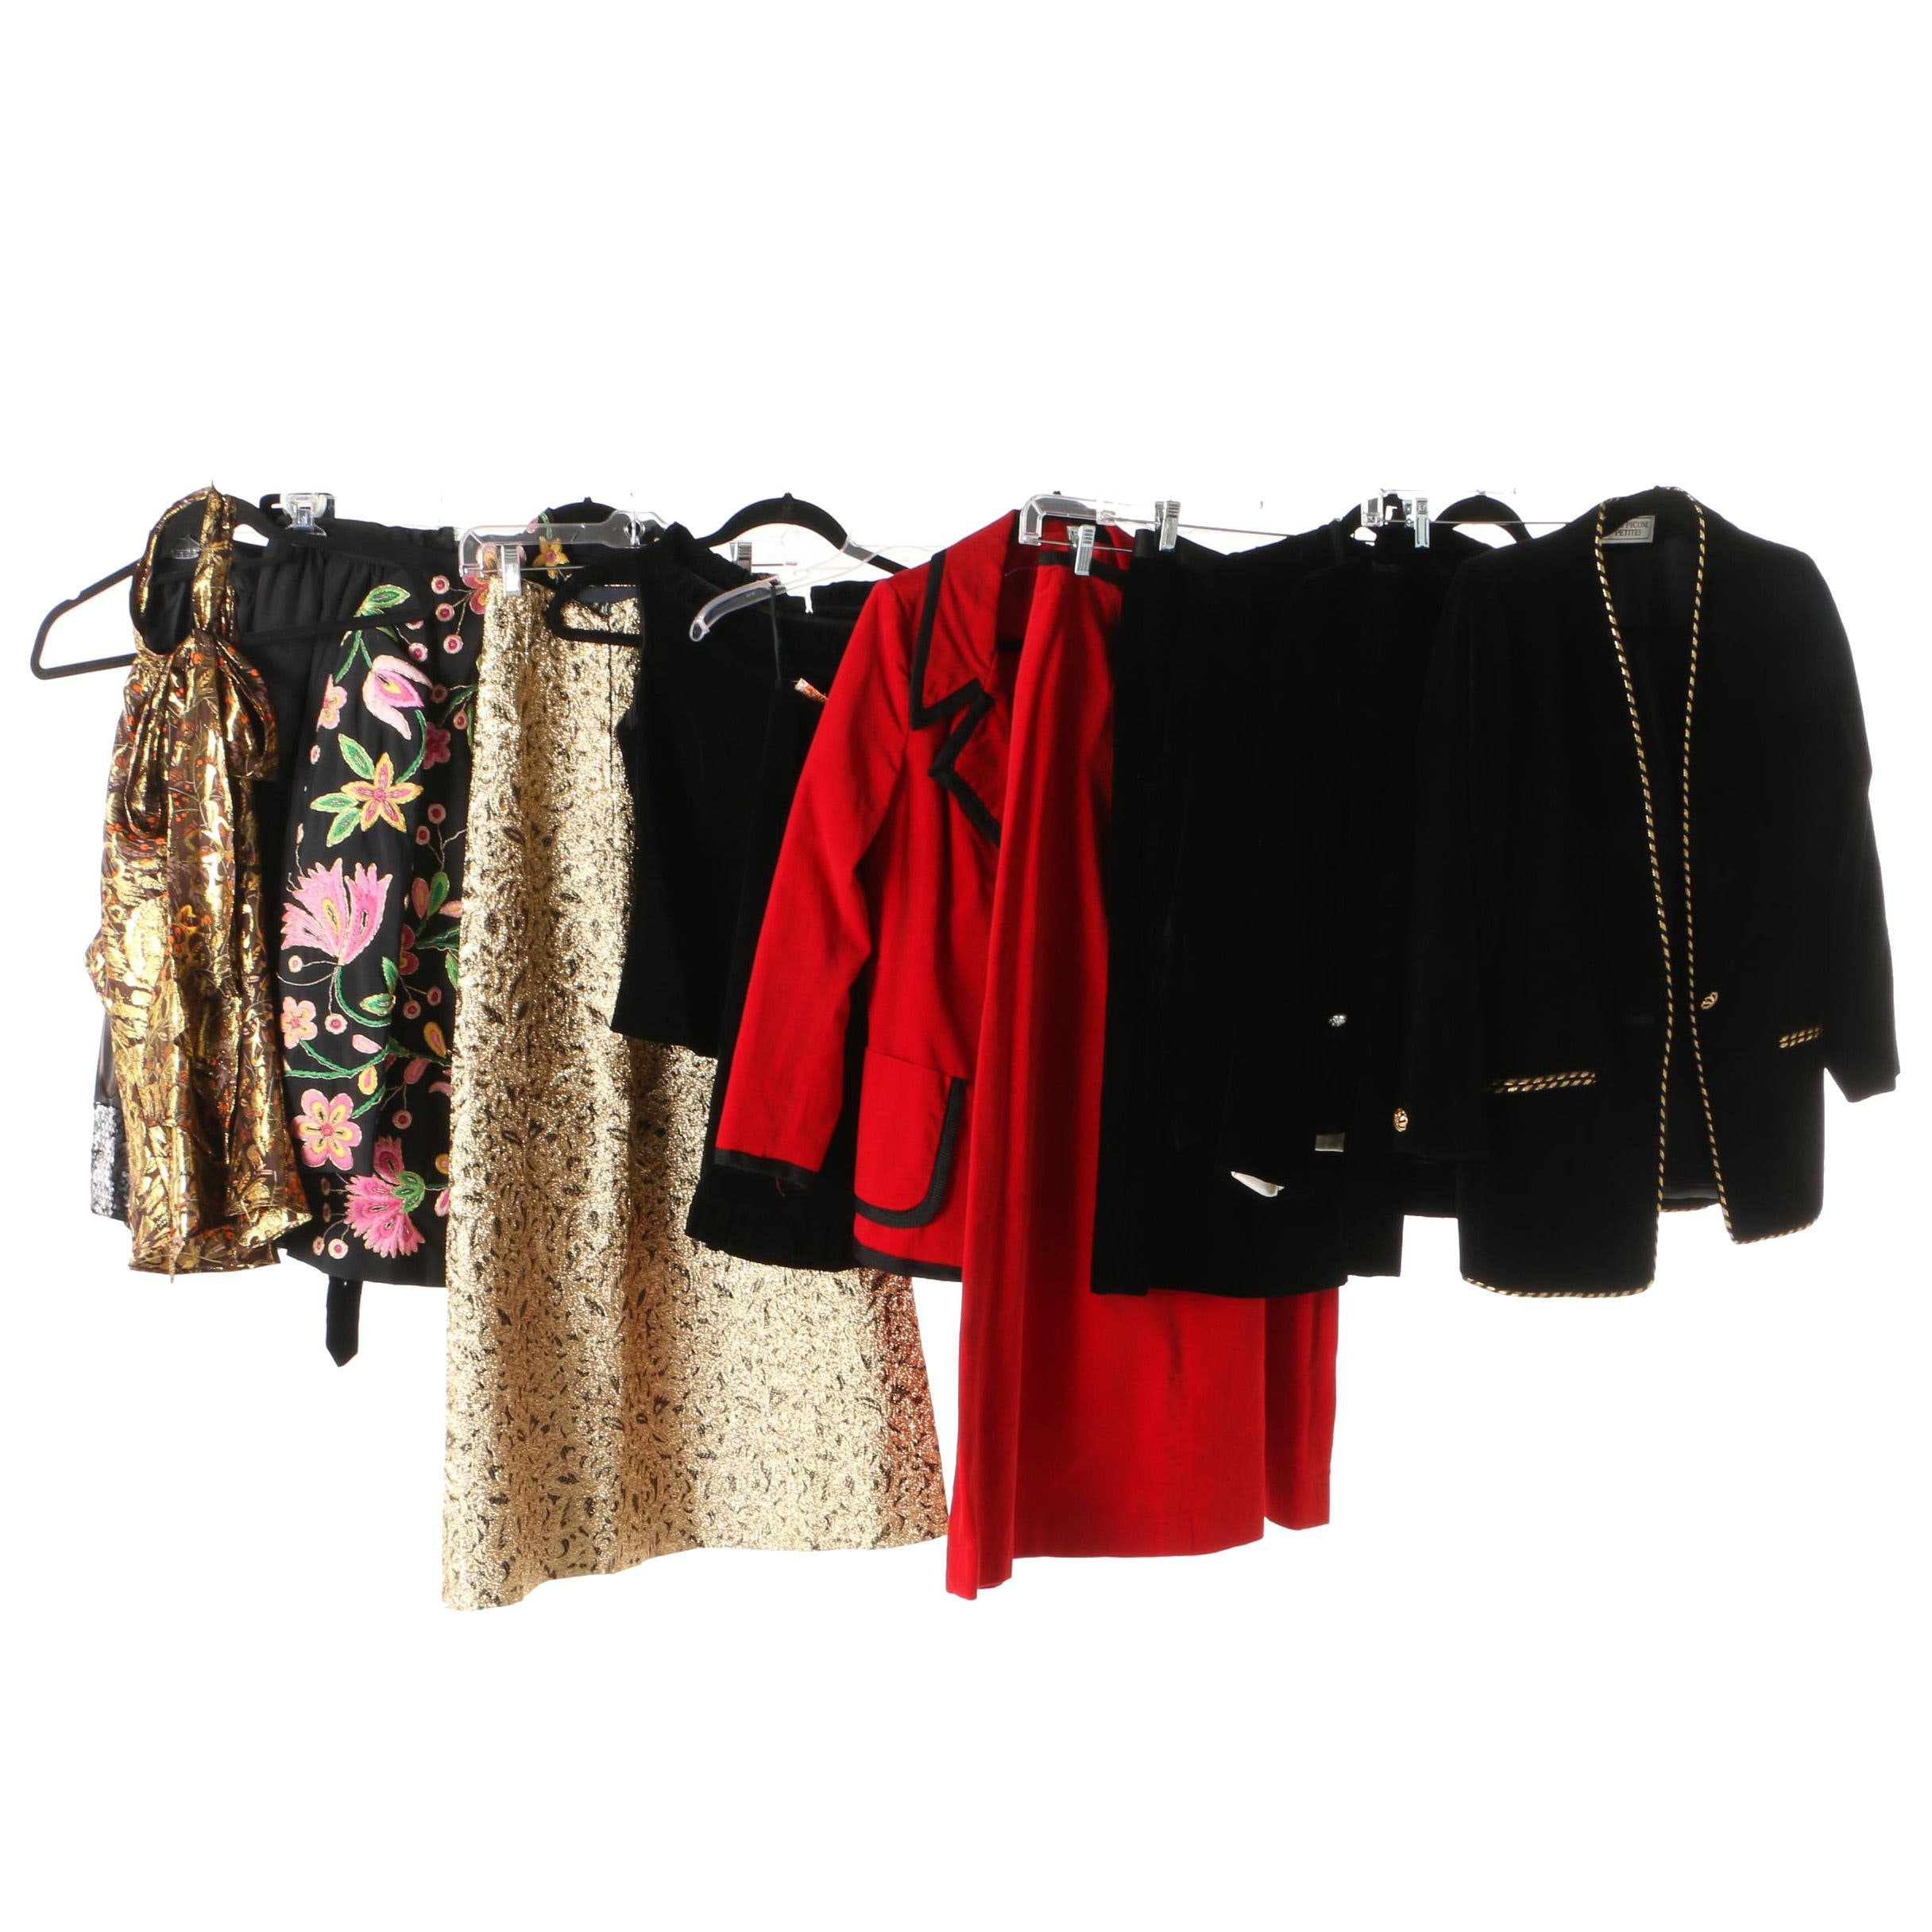 Women's Velvet and Embellished Skirt Suits and Separates Including Evan-Picone